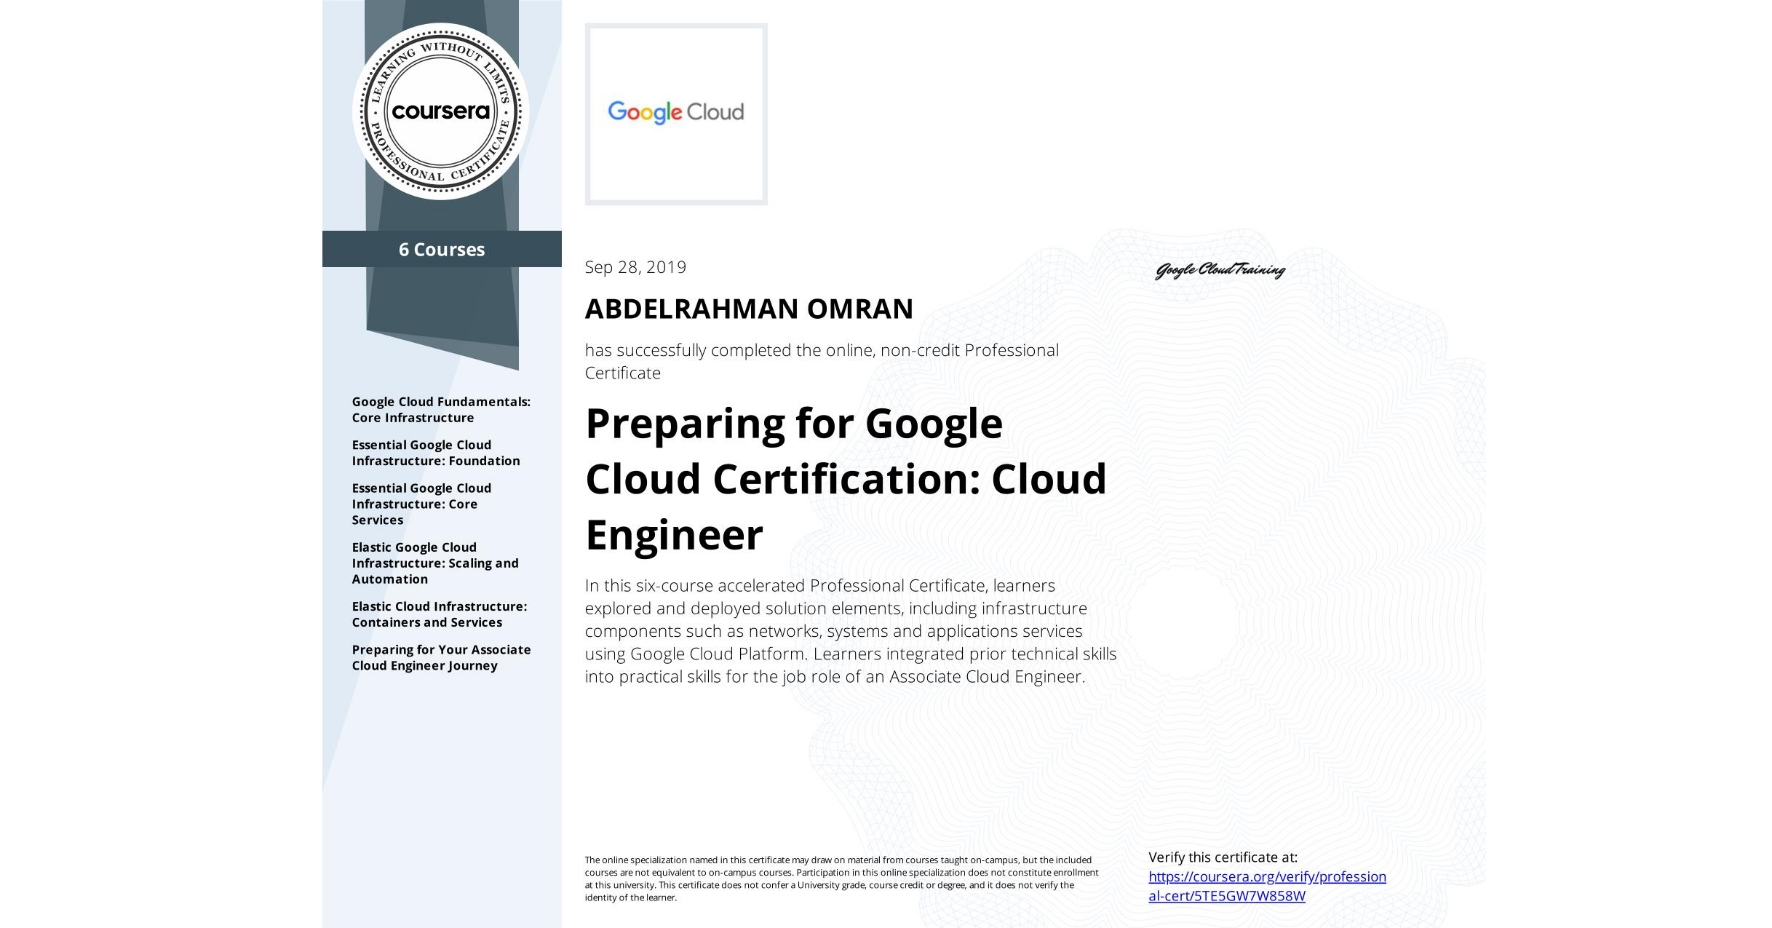 View certificate for ABDELRAHMAN OMRAN, Cloud Engineering with Google Cloud, offered through Coursera. In this six-course accelerated Professional Certificate, learners explored and deployed solution elements, including infrastructure components such as networks, systems and applications services using Google Cloud Platform. Learners integrated prior technical skills into practical skills for the job role of an Associate Cloud Engineer.